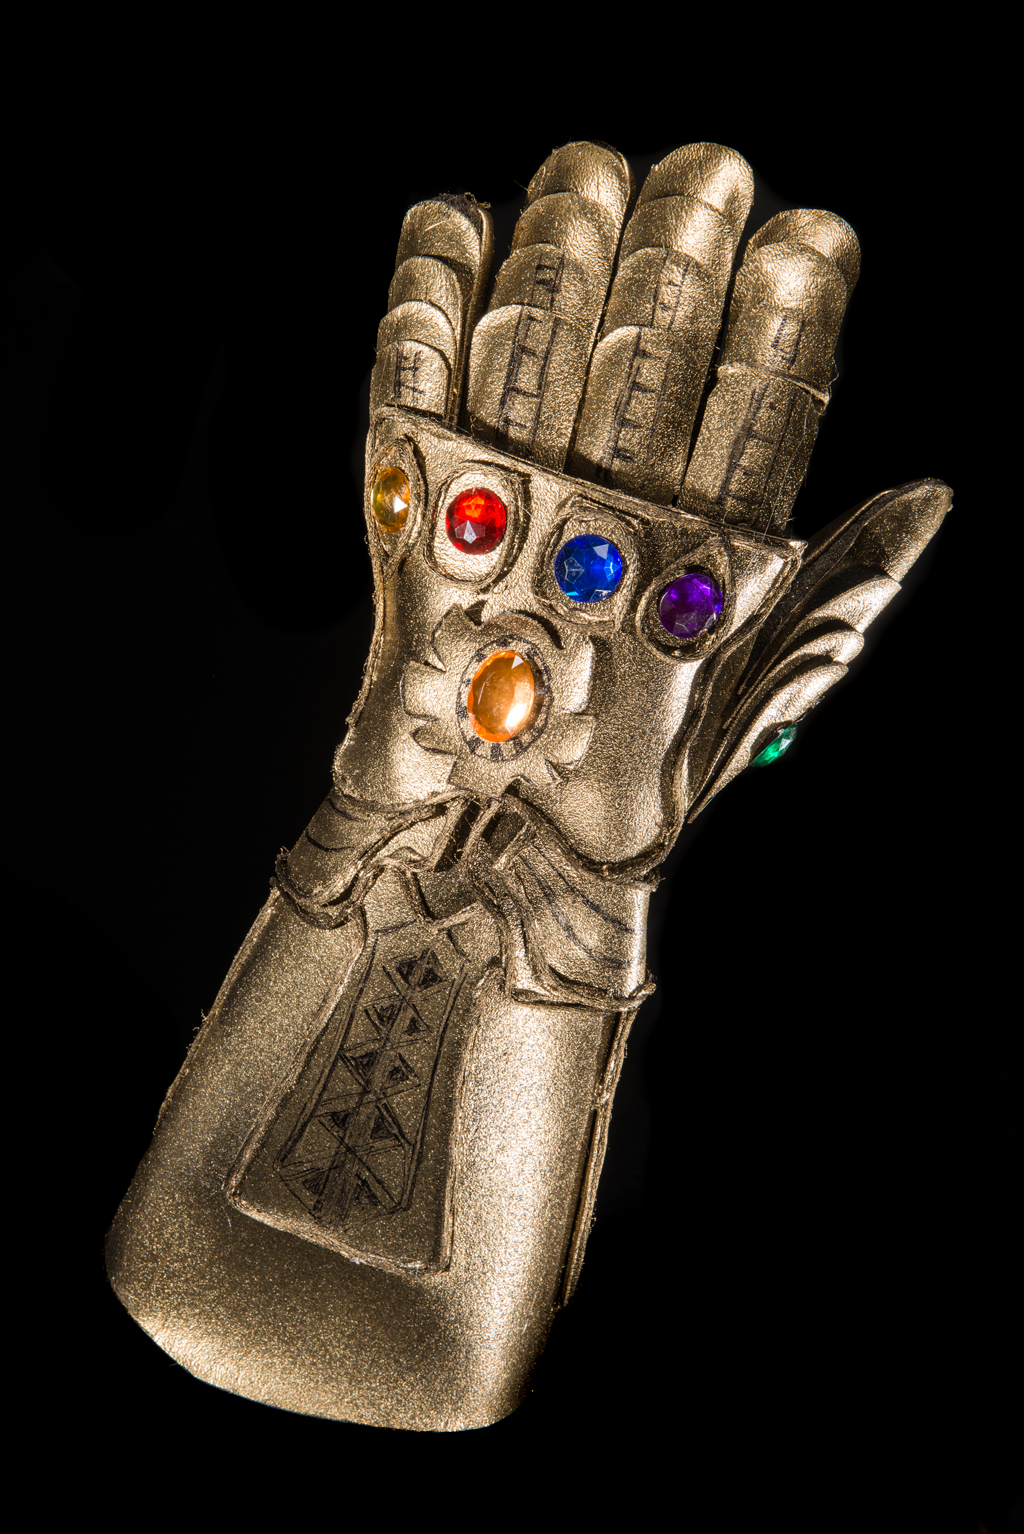 DIY Infinity Gauntlet Costume Upgrade Finished